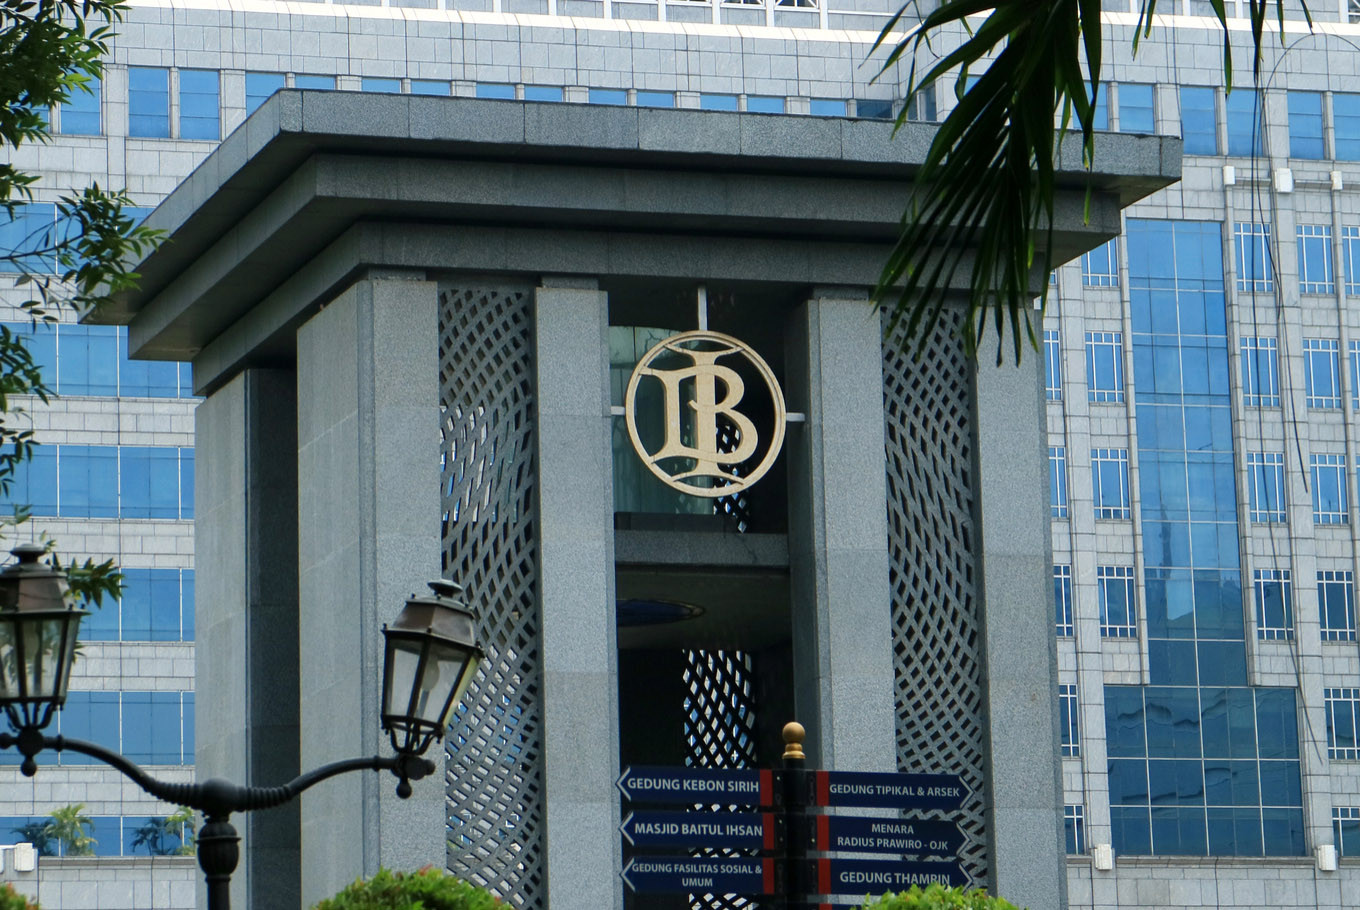 Indonesia's balance of payments falls to deficit in Q2 amid slowing growth